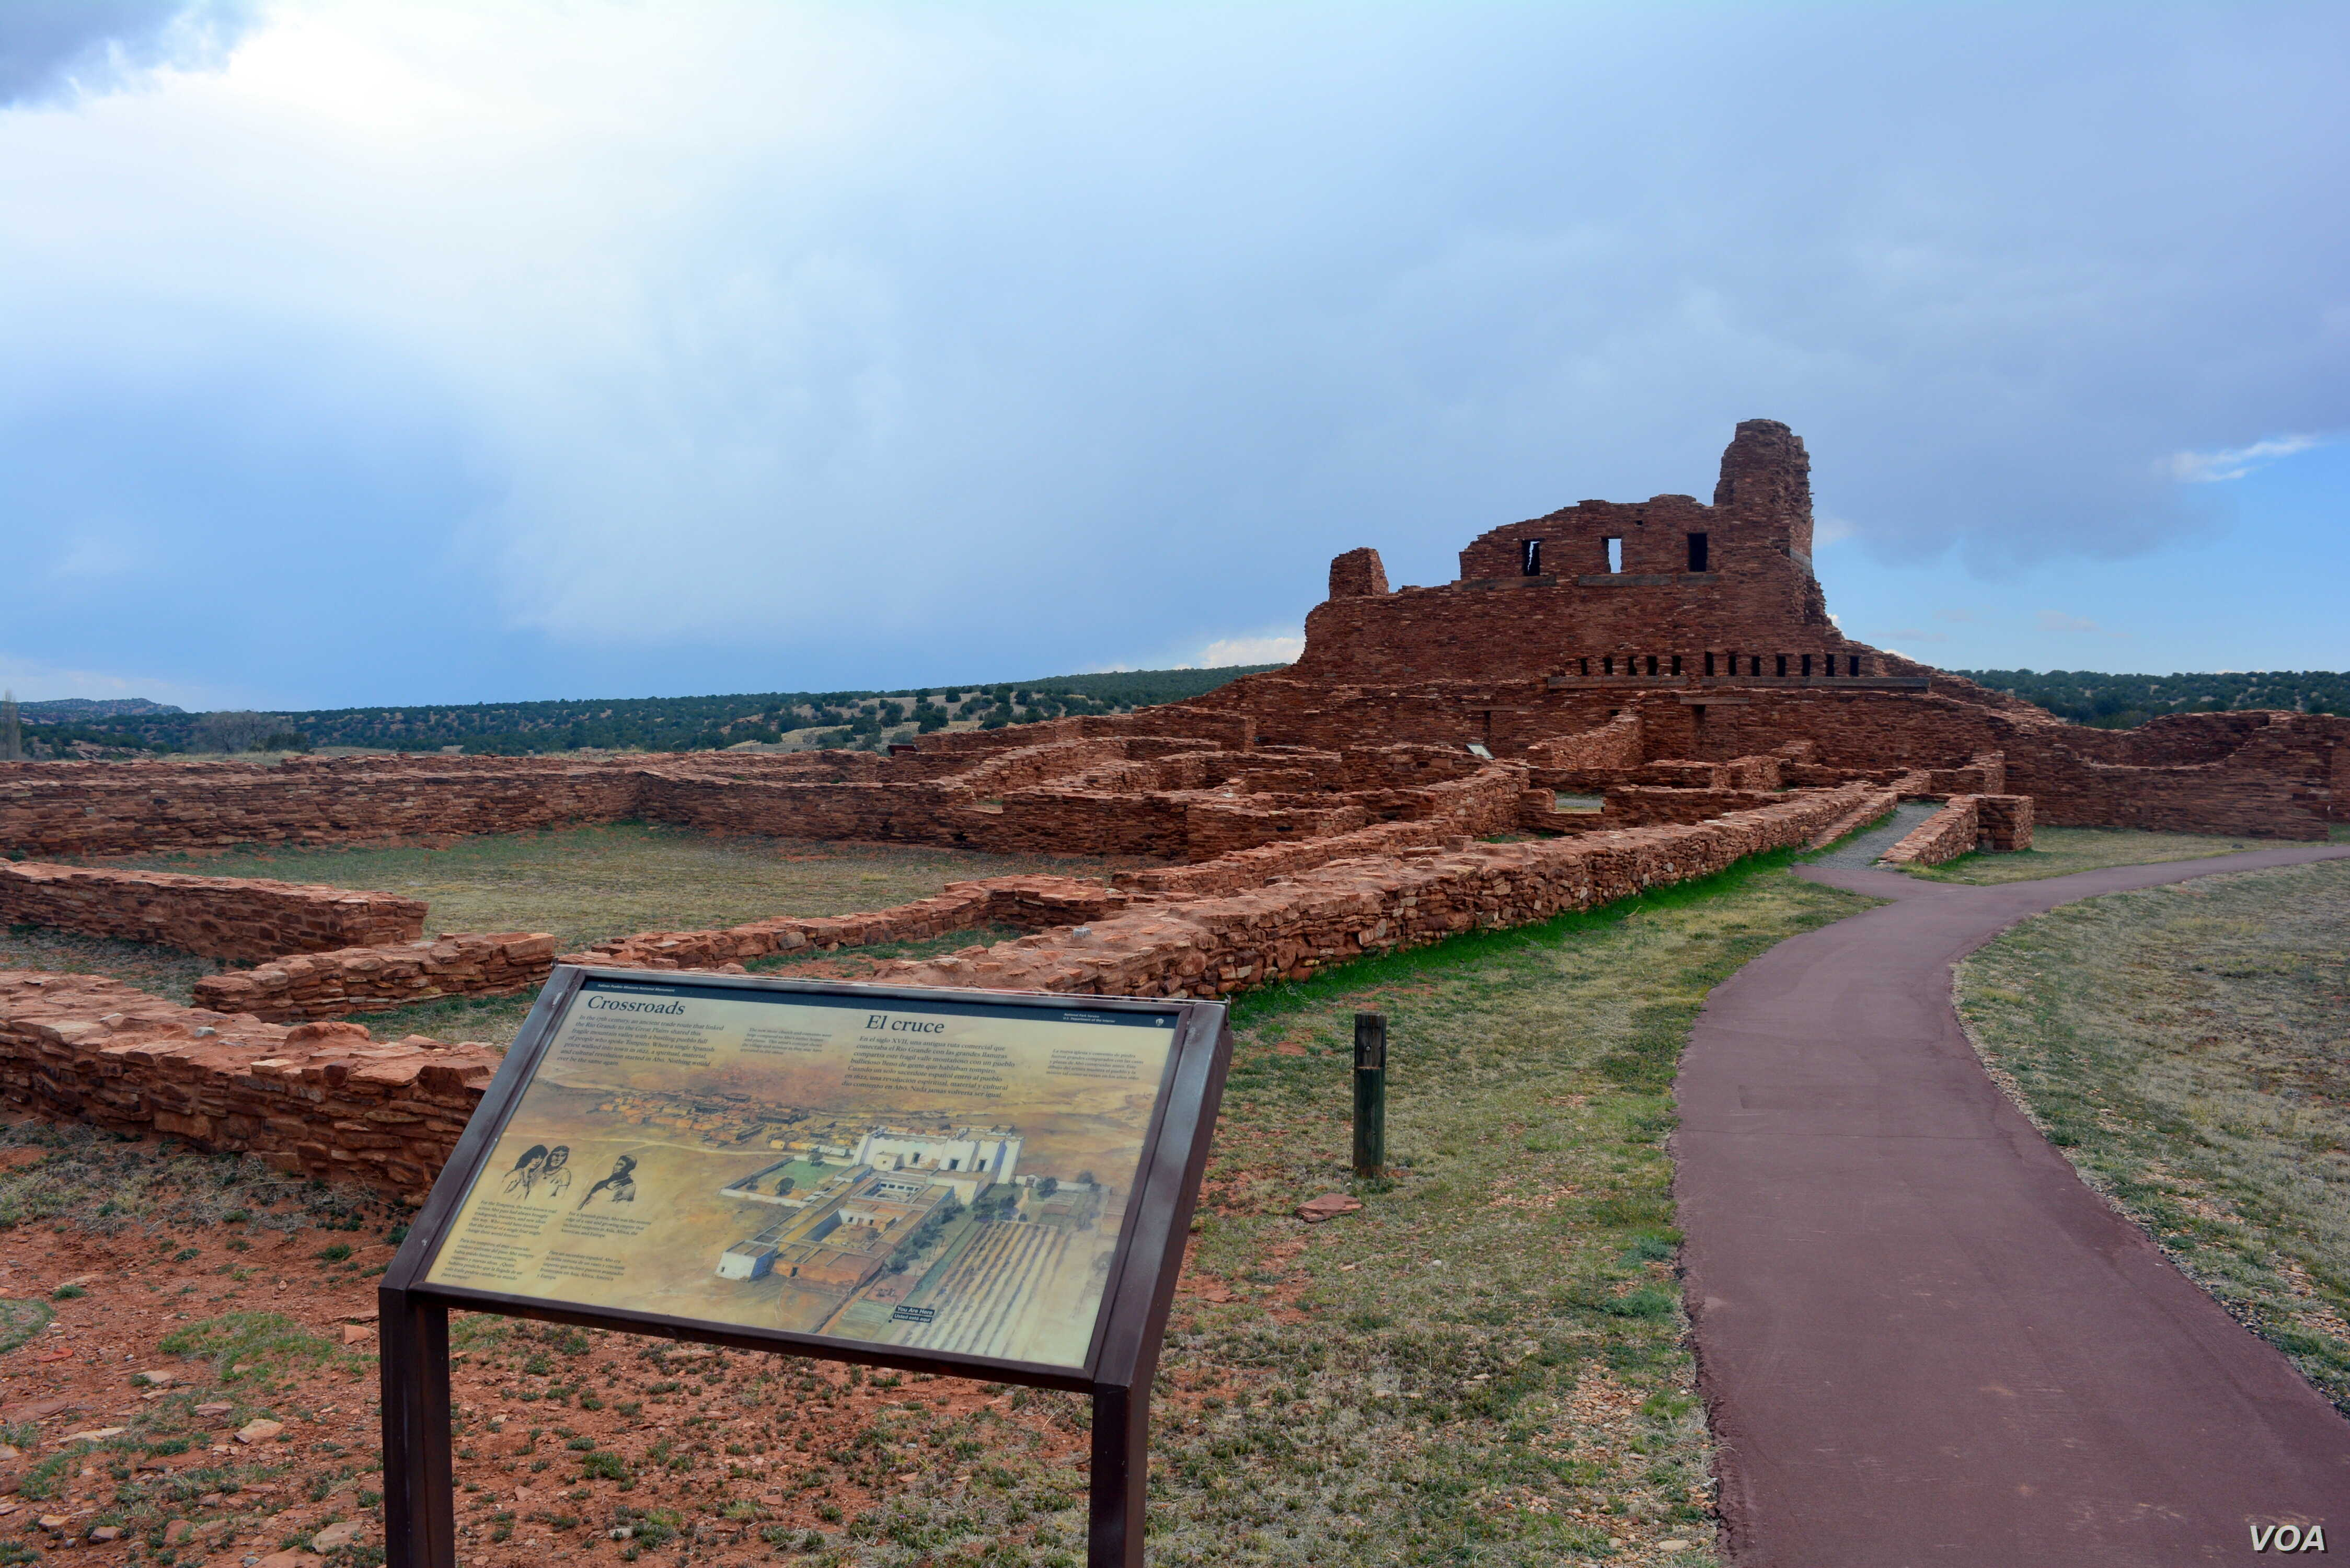 The now abandoned sites at Salinas Pueblo Missions National Monument in New Mexico stand as reminders of the Spanish and Pueblo People's early encounters.